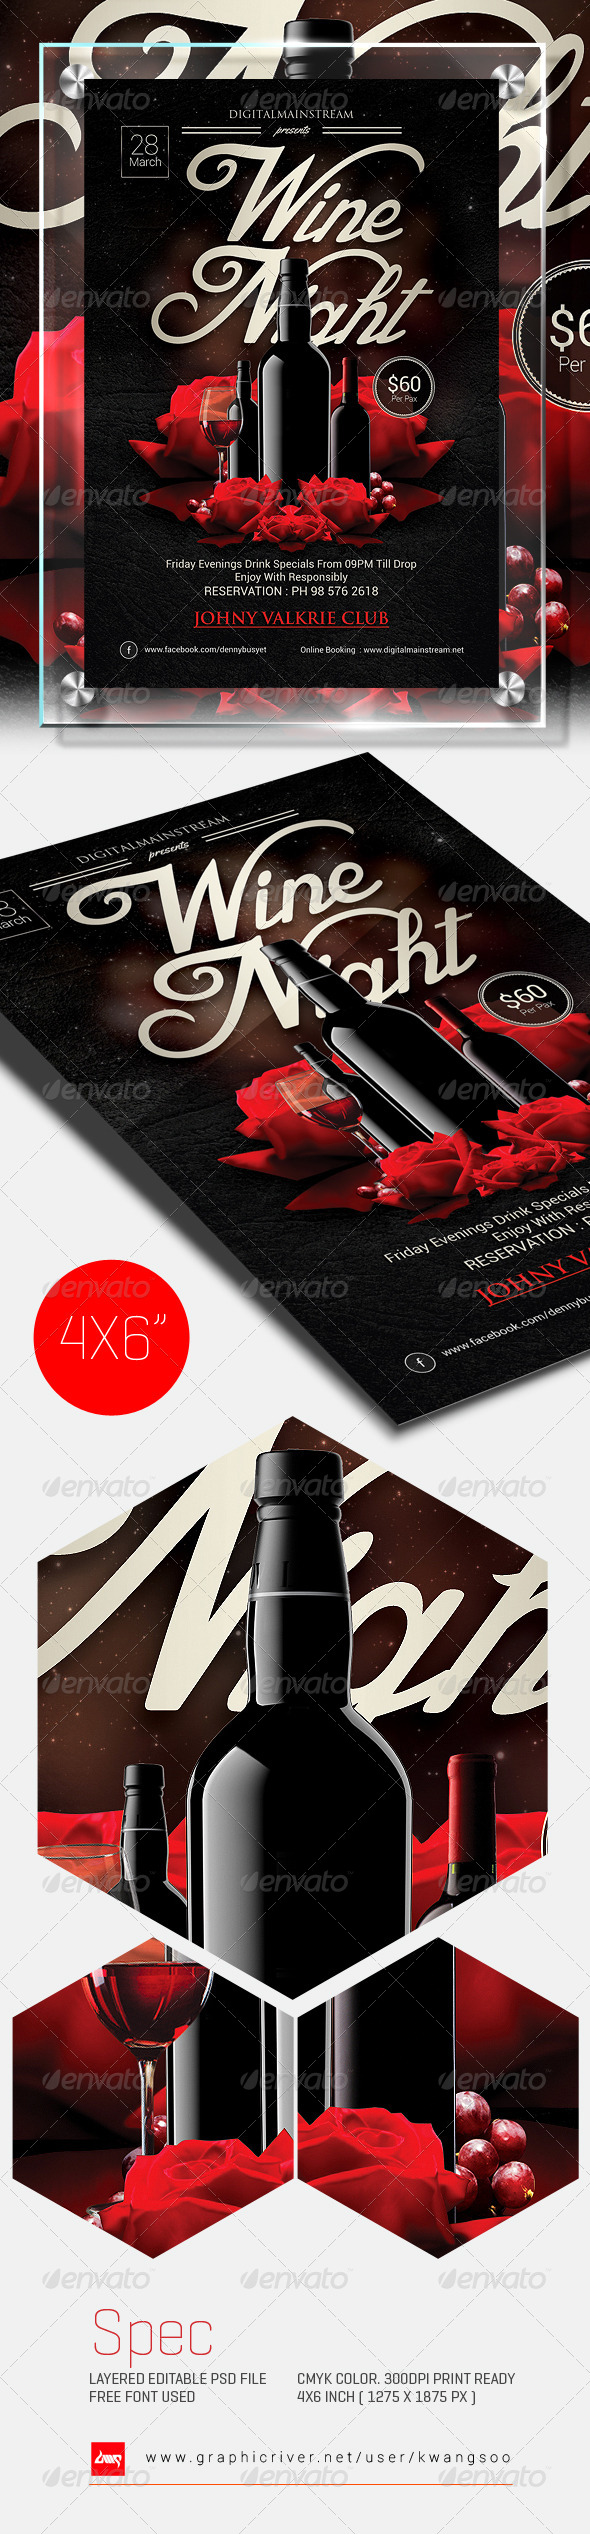 Wine Night Invitation Flyer Template - Events Flyers